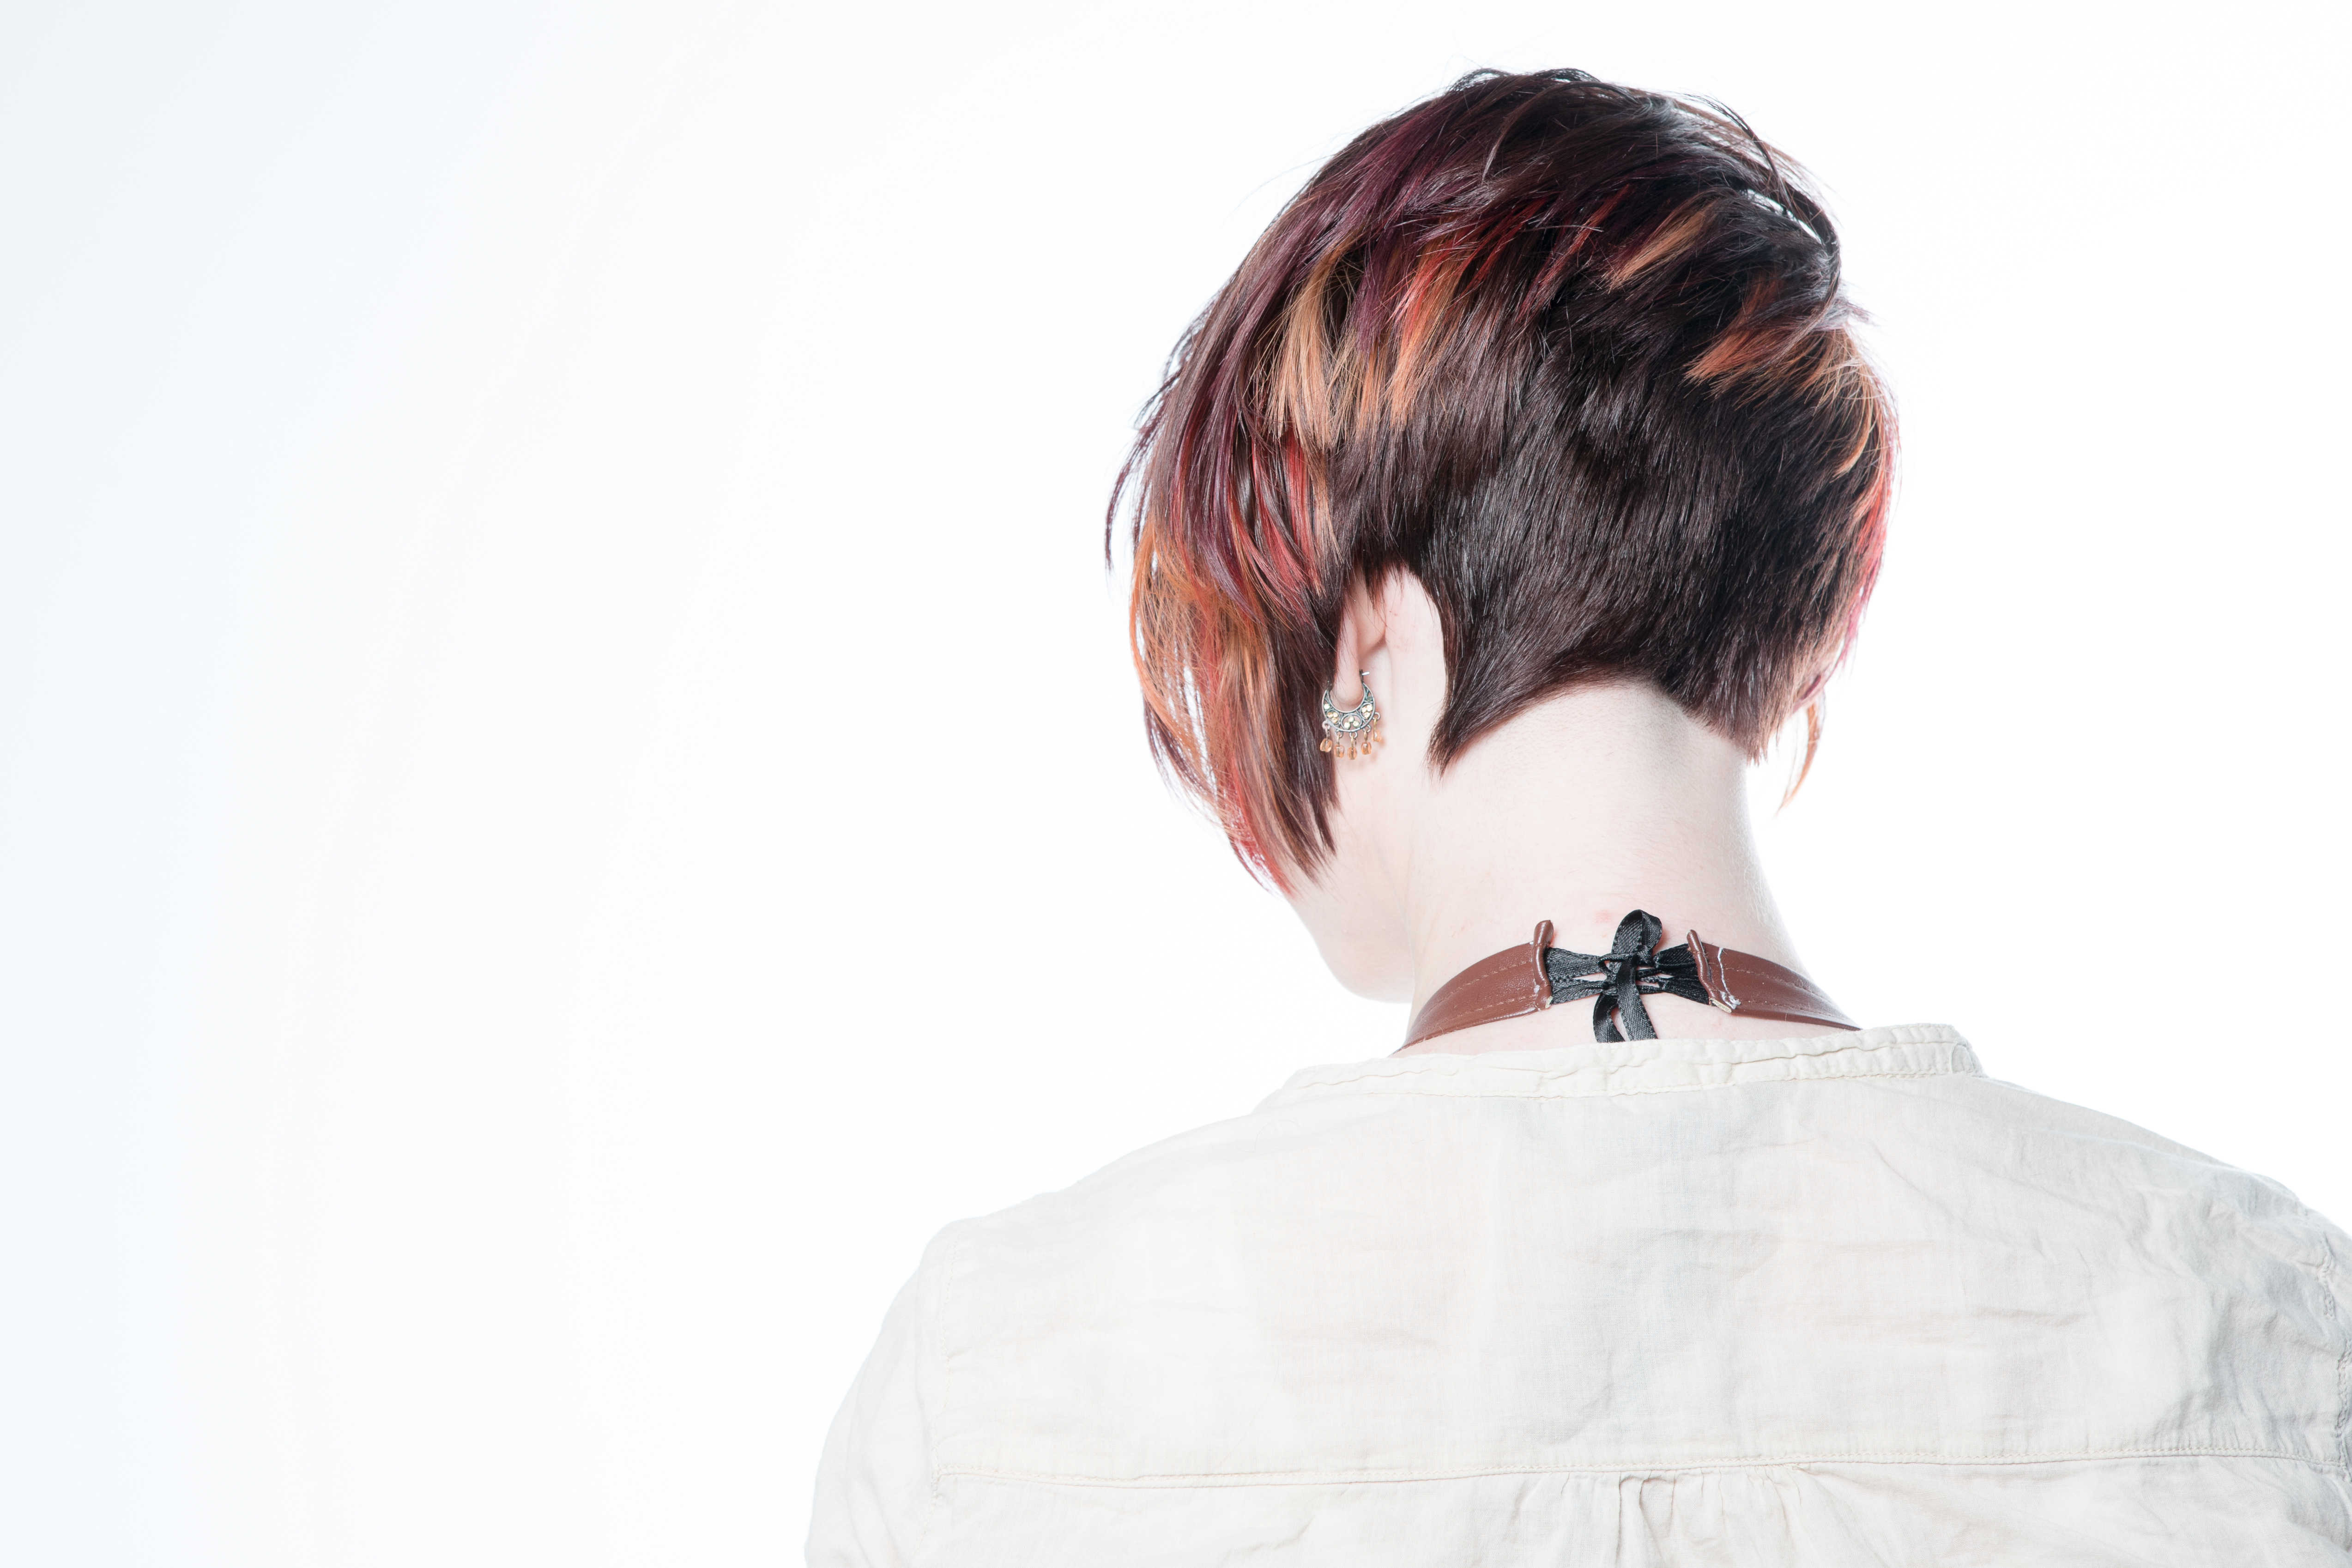 Model with a pixie cut that has orange highlights at the ends, view from the back